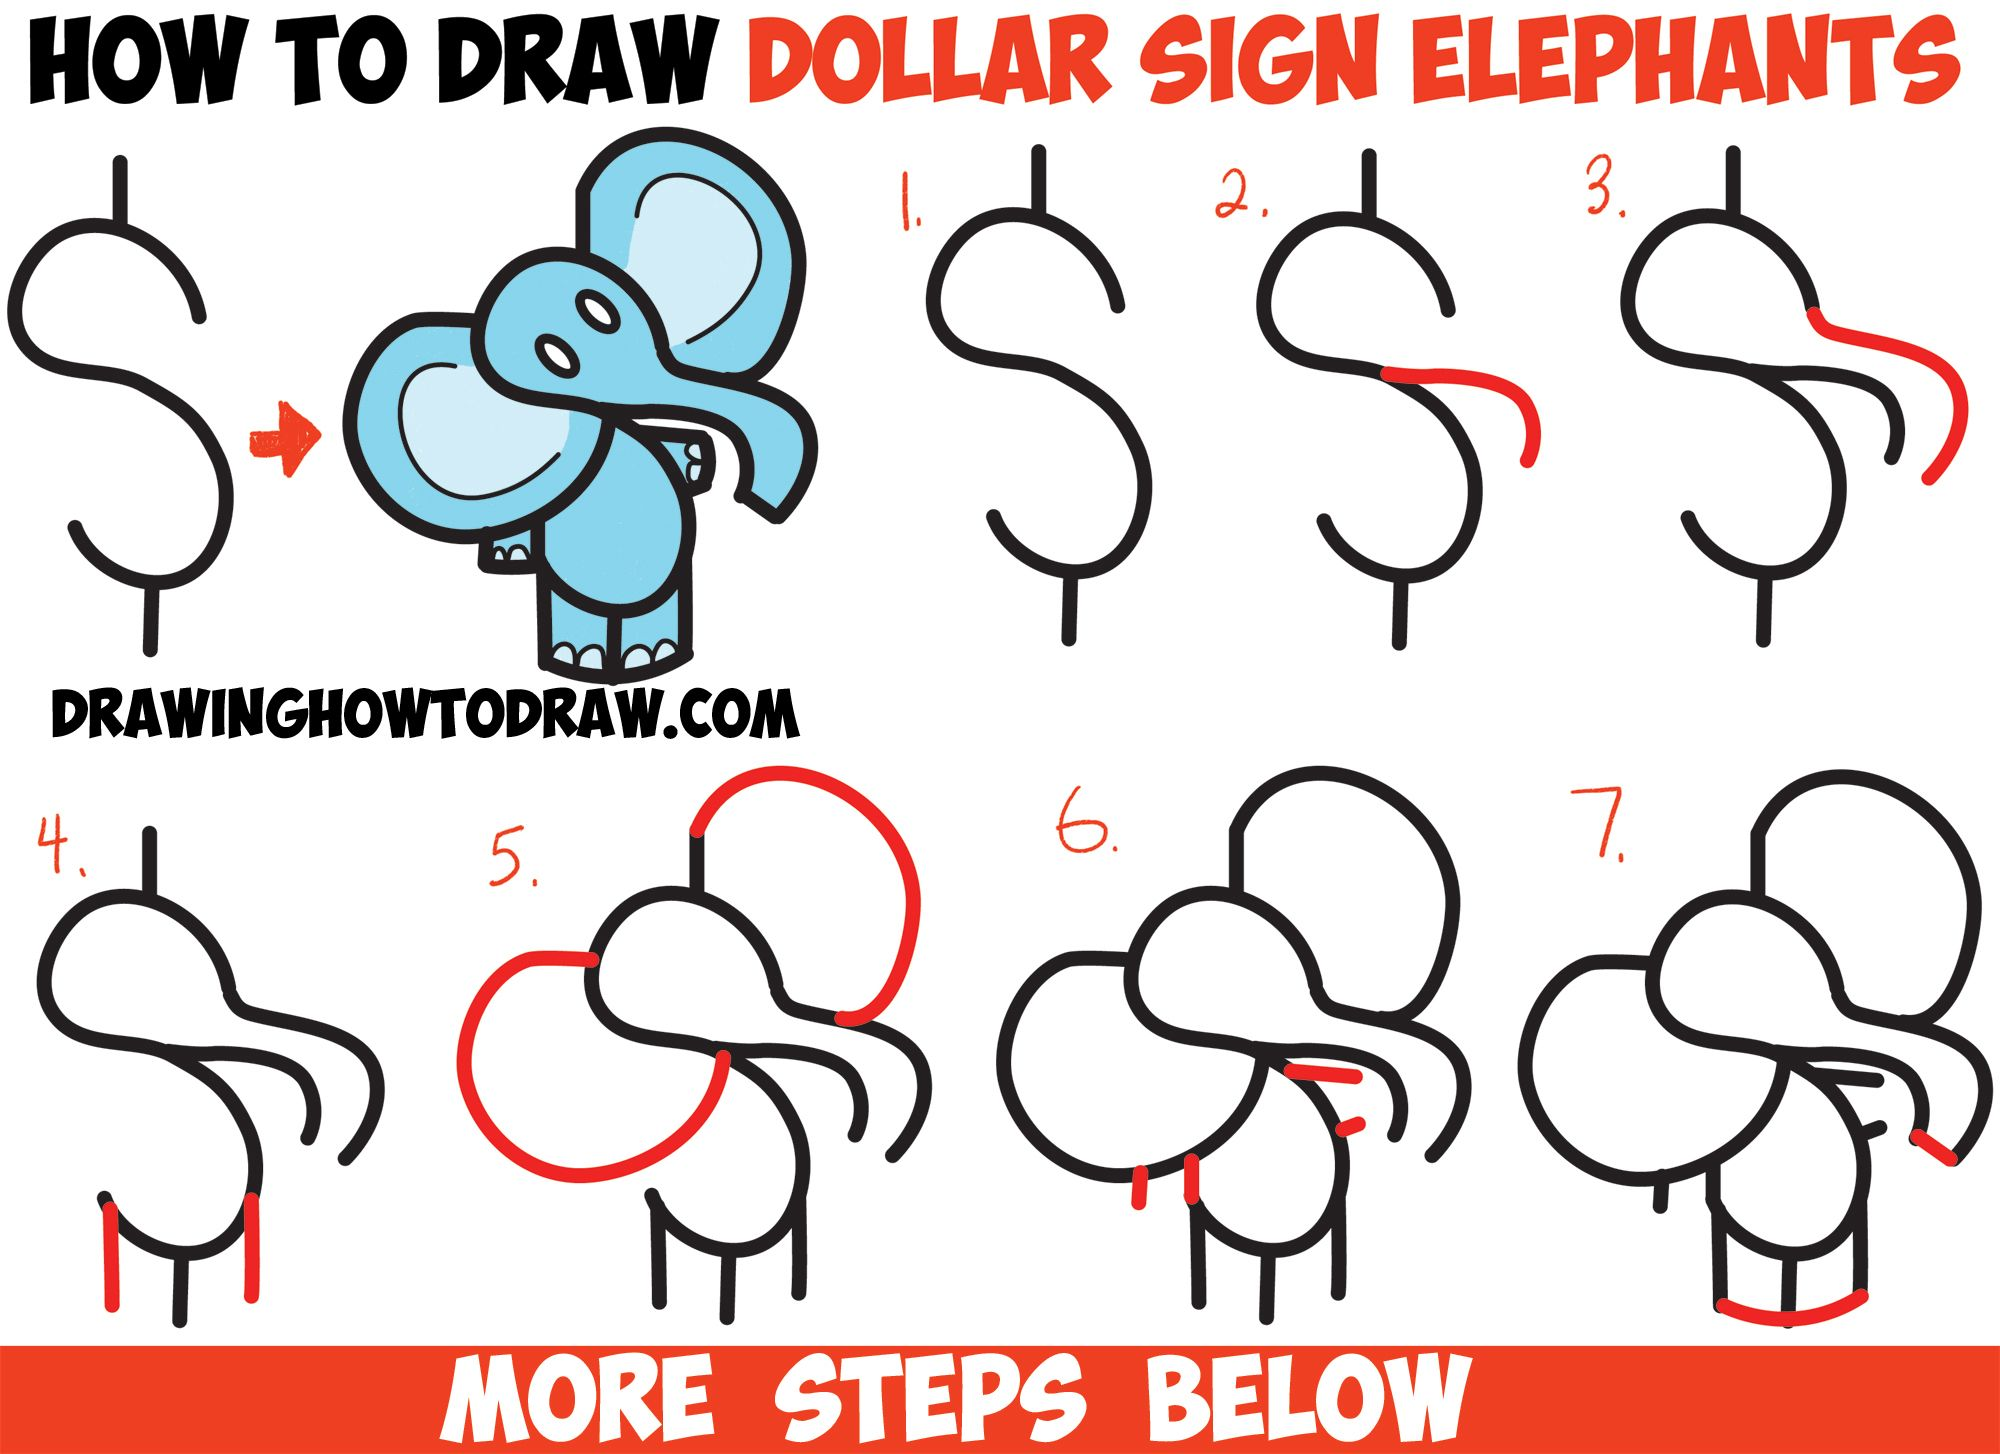 Number How  To Draw Cartoon Elephant From The Dollar Sign  Easy Step